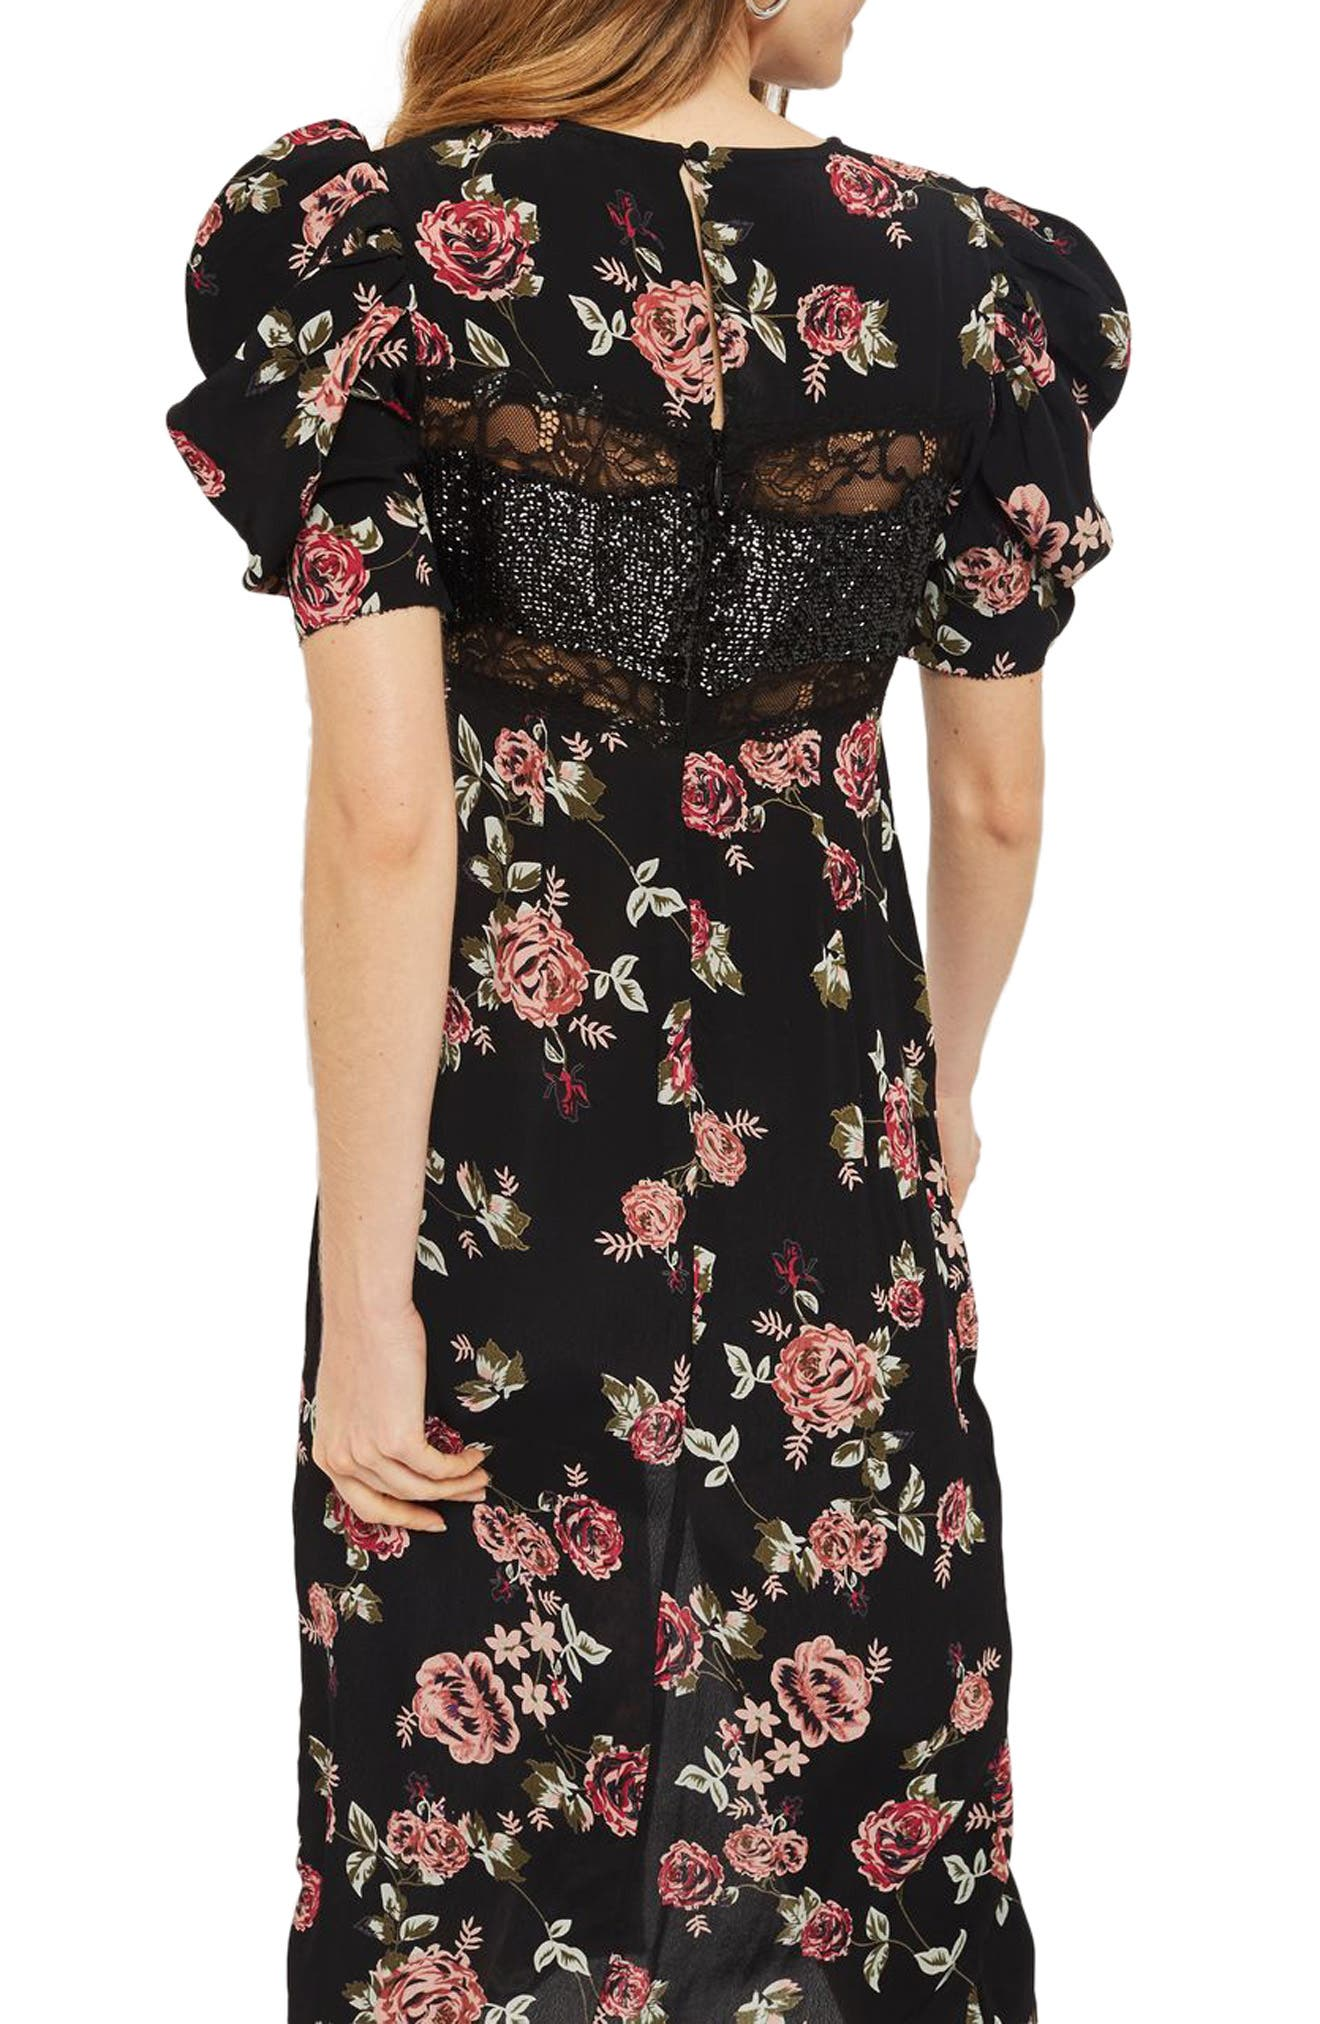 Sequined Floral Puff Sleeve Midi Dress,                             Alternate thumbnail 2, color,                             001